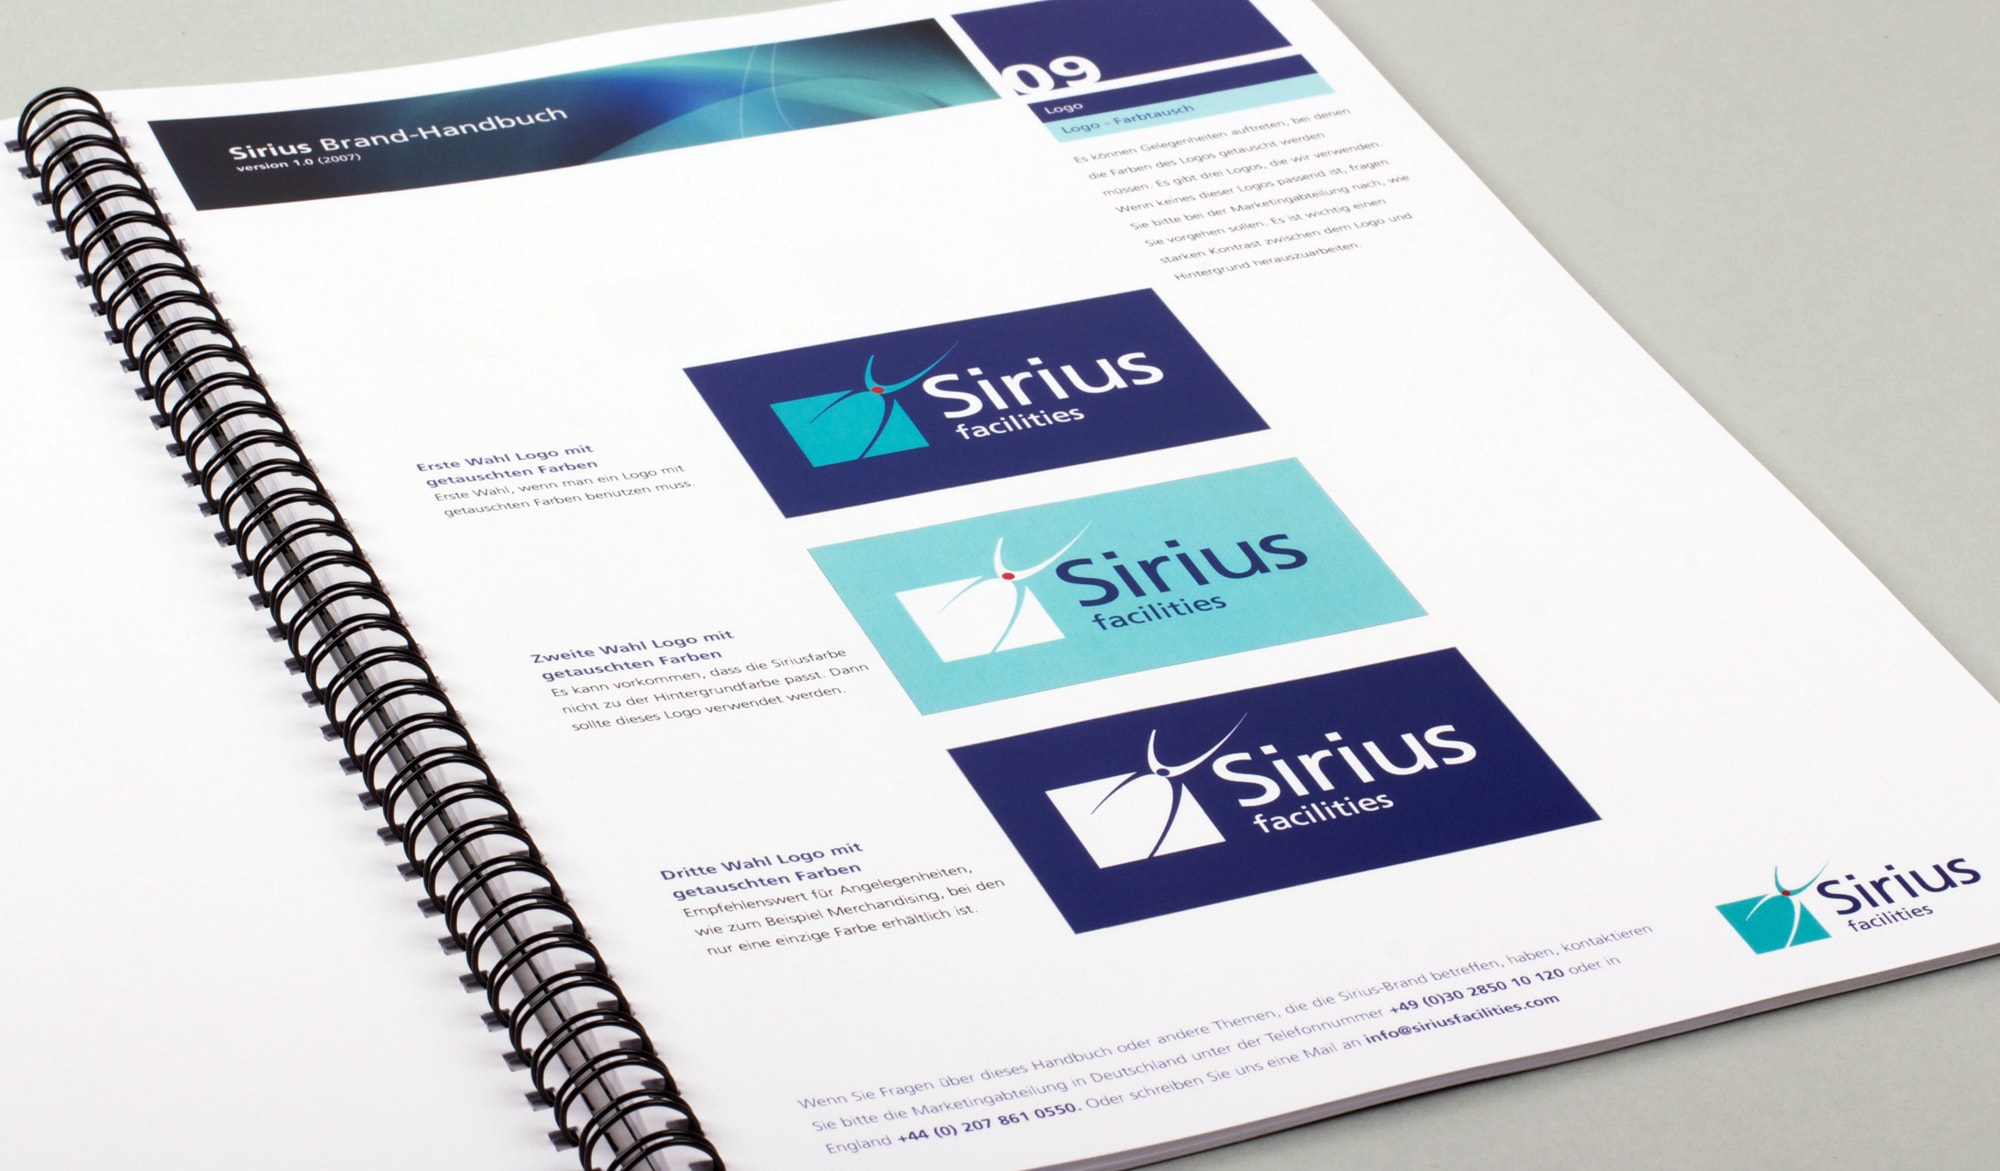 Sirius Facilities brand guidelines